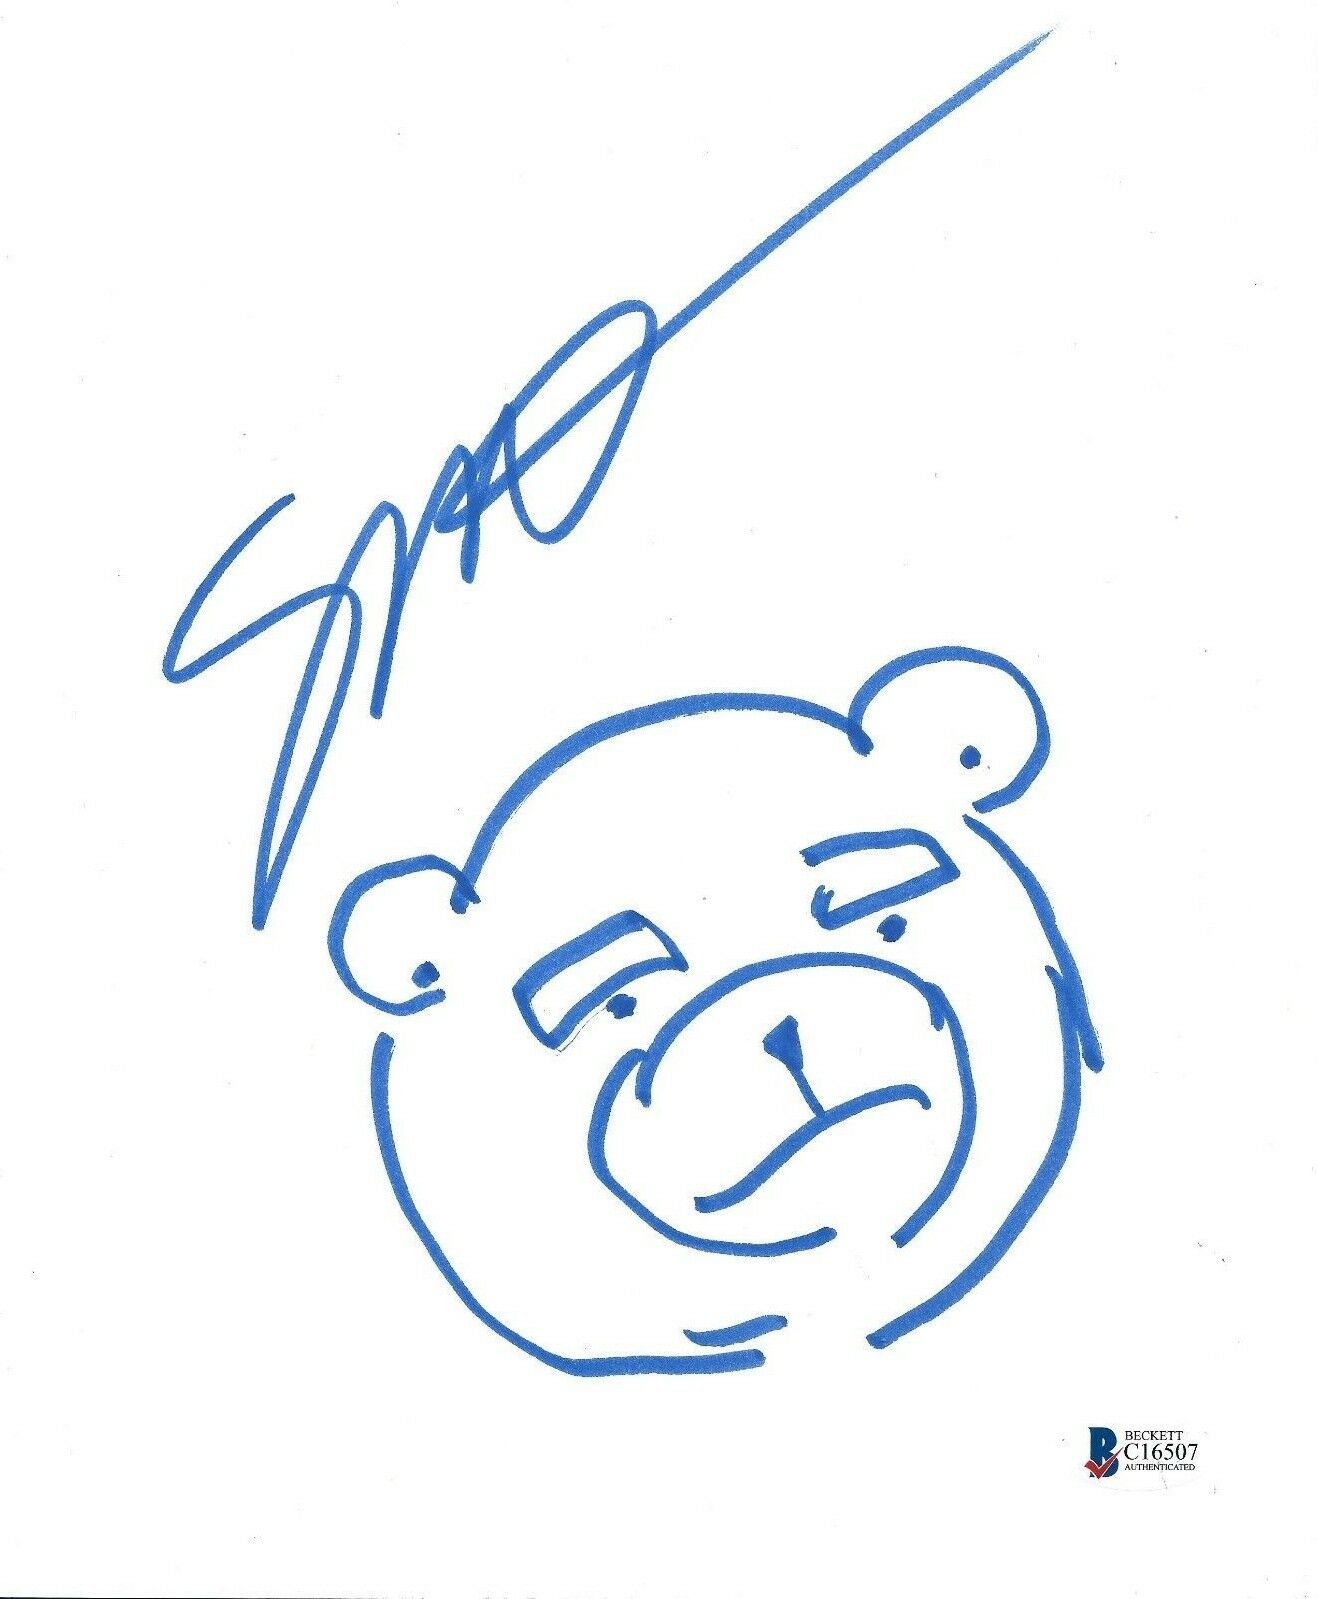 Seth Mcfarlane Signed/Hand Drawn 'Ted' 8.5x11 Photo/Drawing Sheet Sketch BAS